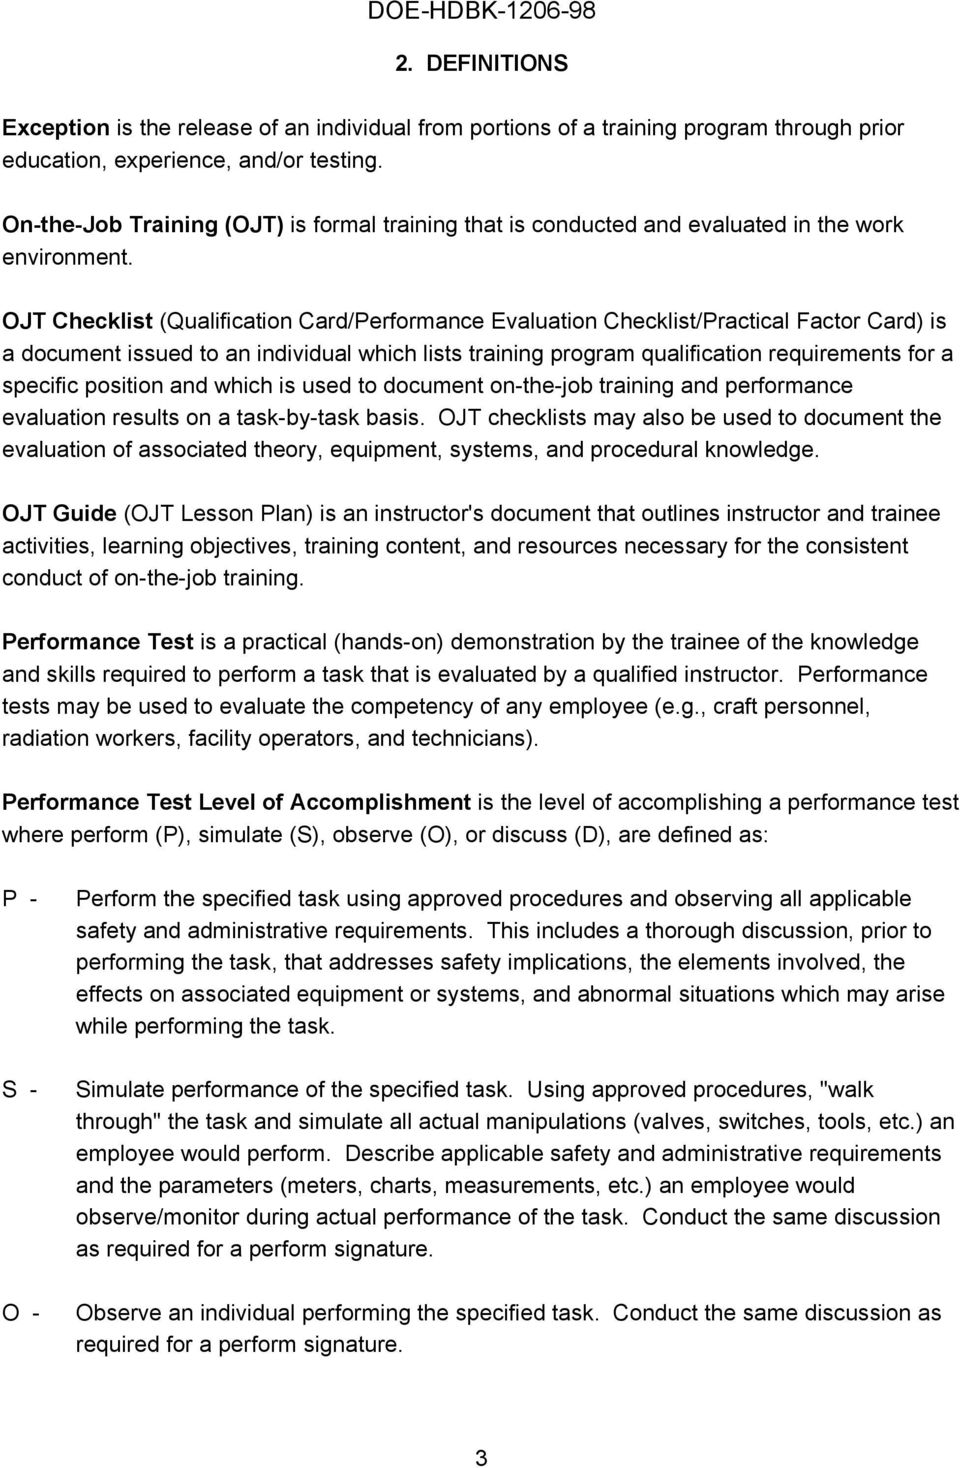 OJT hecklist (Qualification ard/performance Evaluation hecklist/practical Factor ard) is a document issued to an individual which lists training program qualification requirements for a specific